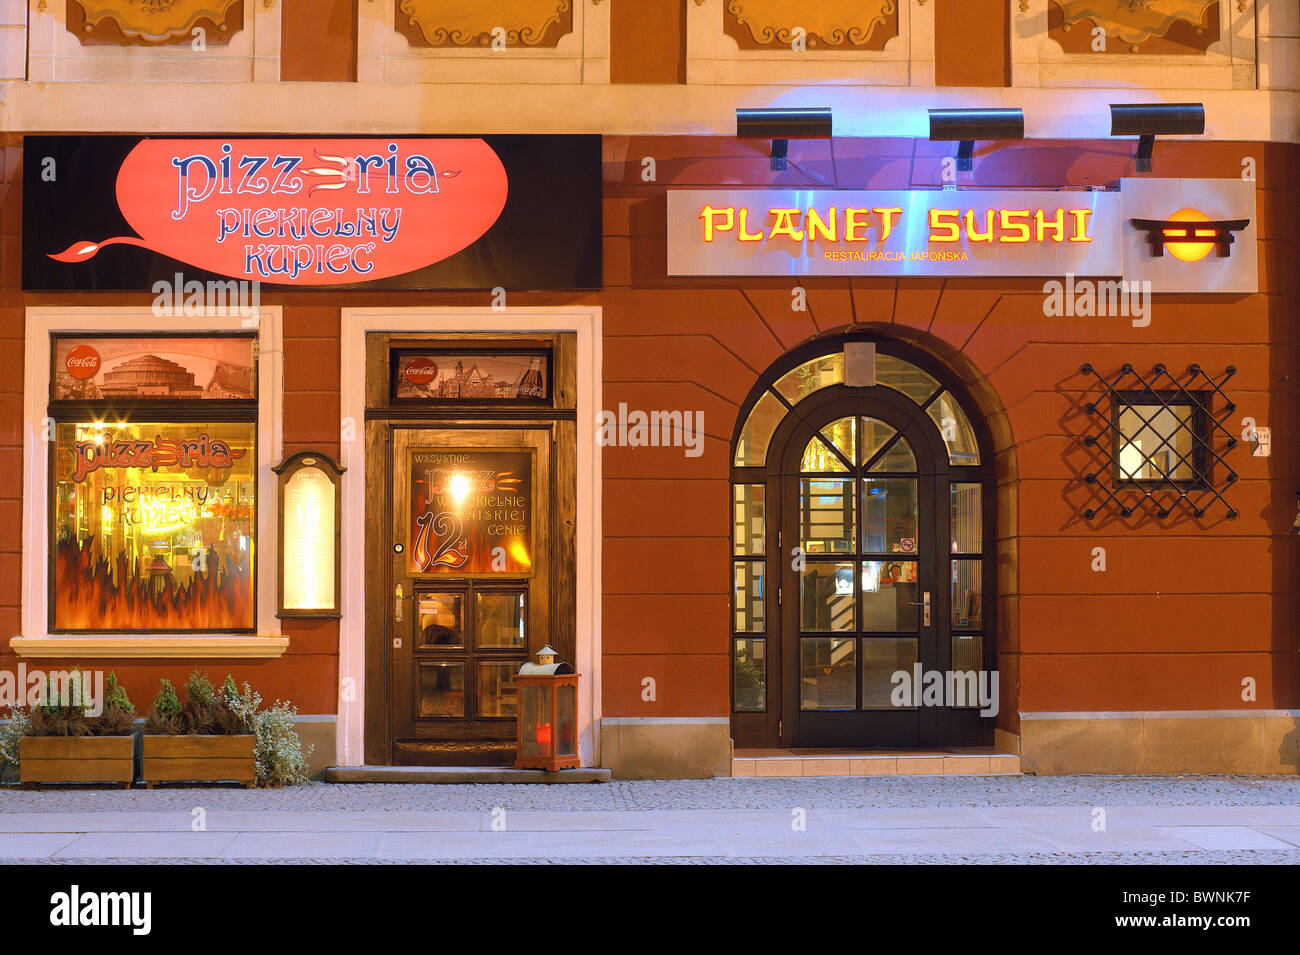 Planet Sushi restaurant by night Wroclaw Old Market Poland - Stock Image